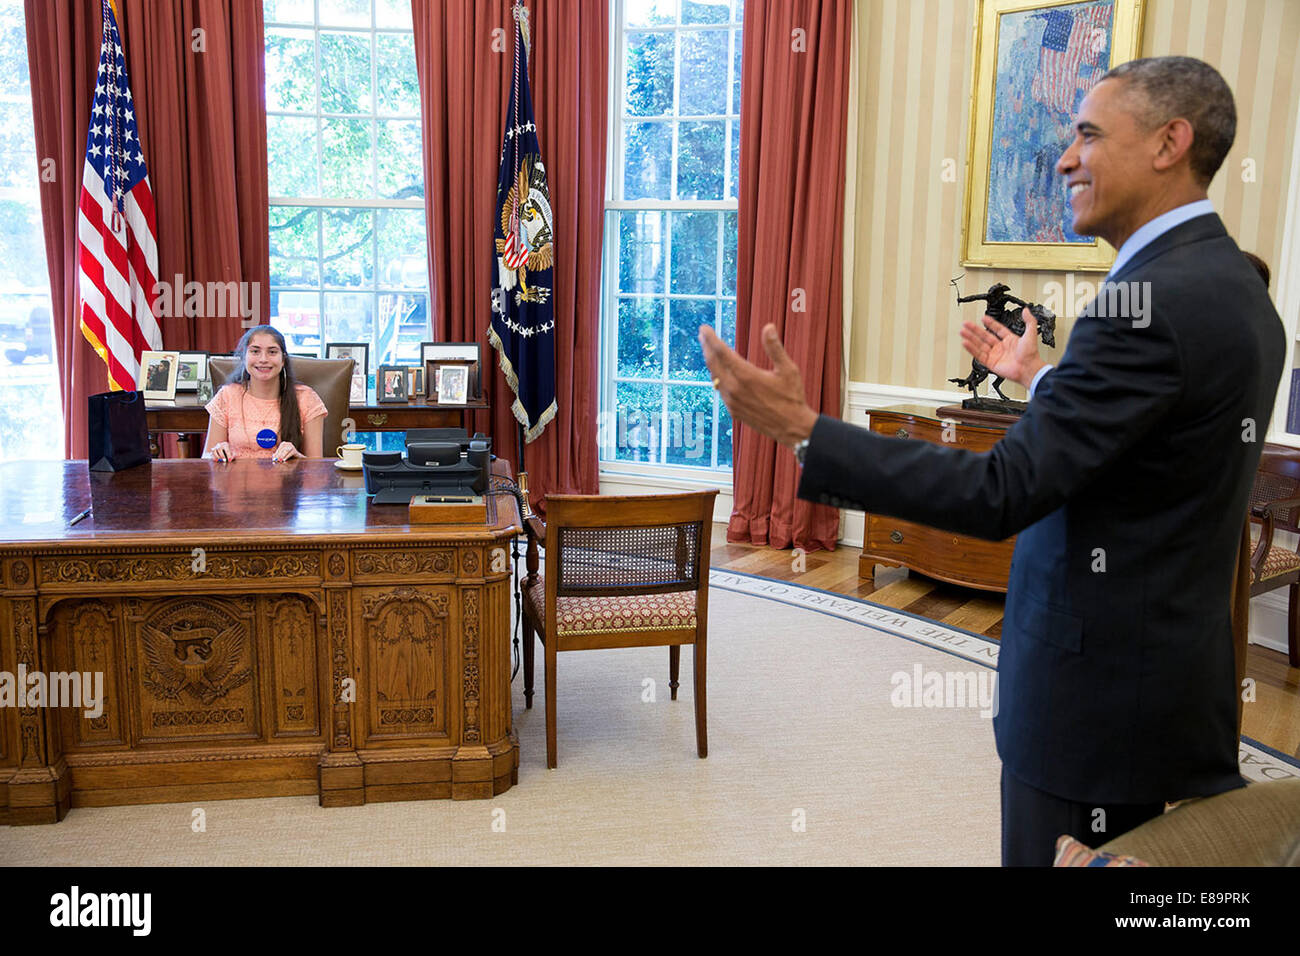 President Barack Obama jokes with Mattina Falco, 19-year-old Make-A-Wish recipient from Worchester, Mass., as she - Stock Image